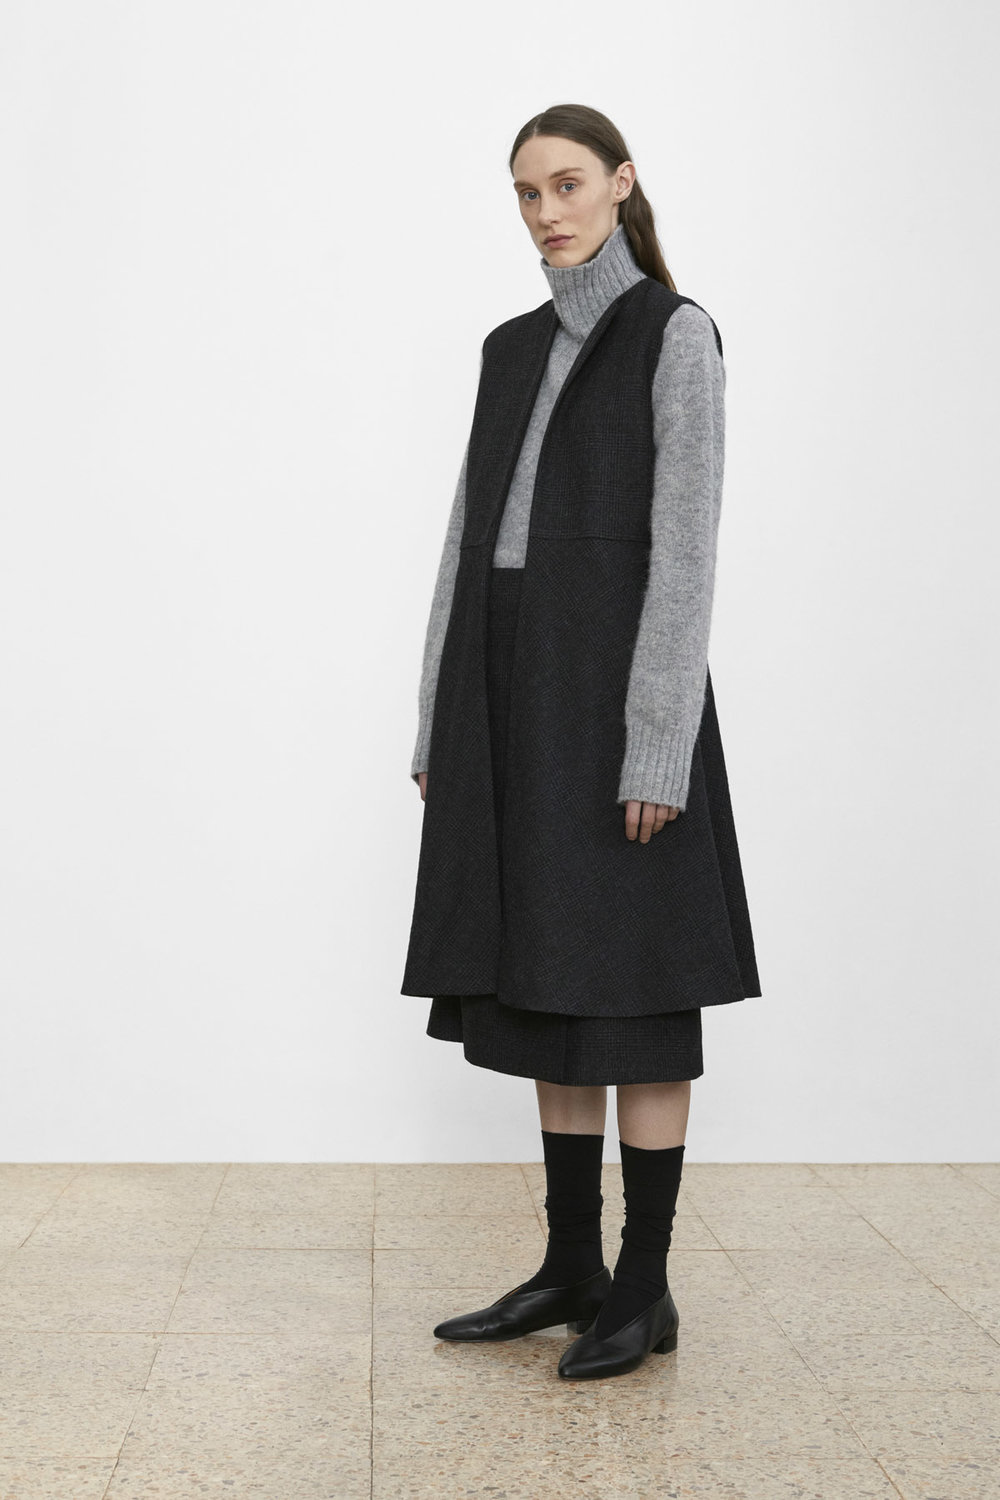 <b>6</b><br>Amber Wool Knit Top<br>Eloise Checked Wool Dress<br>Olive Checked Wool Skirt